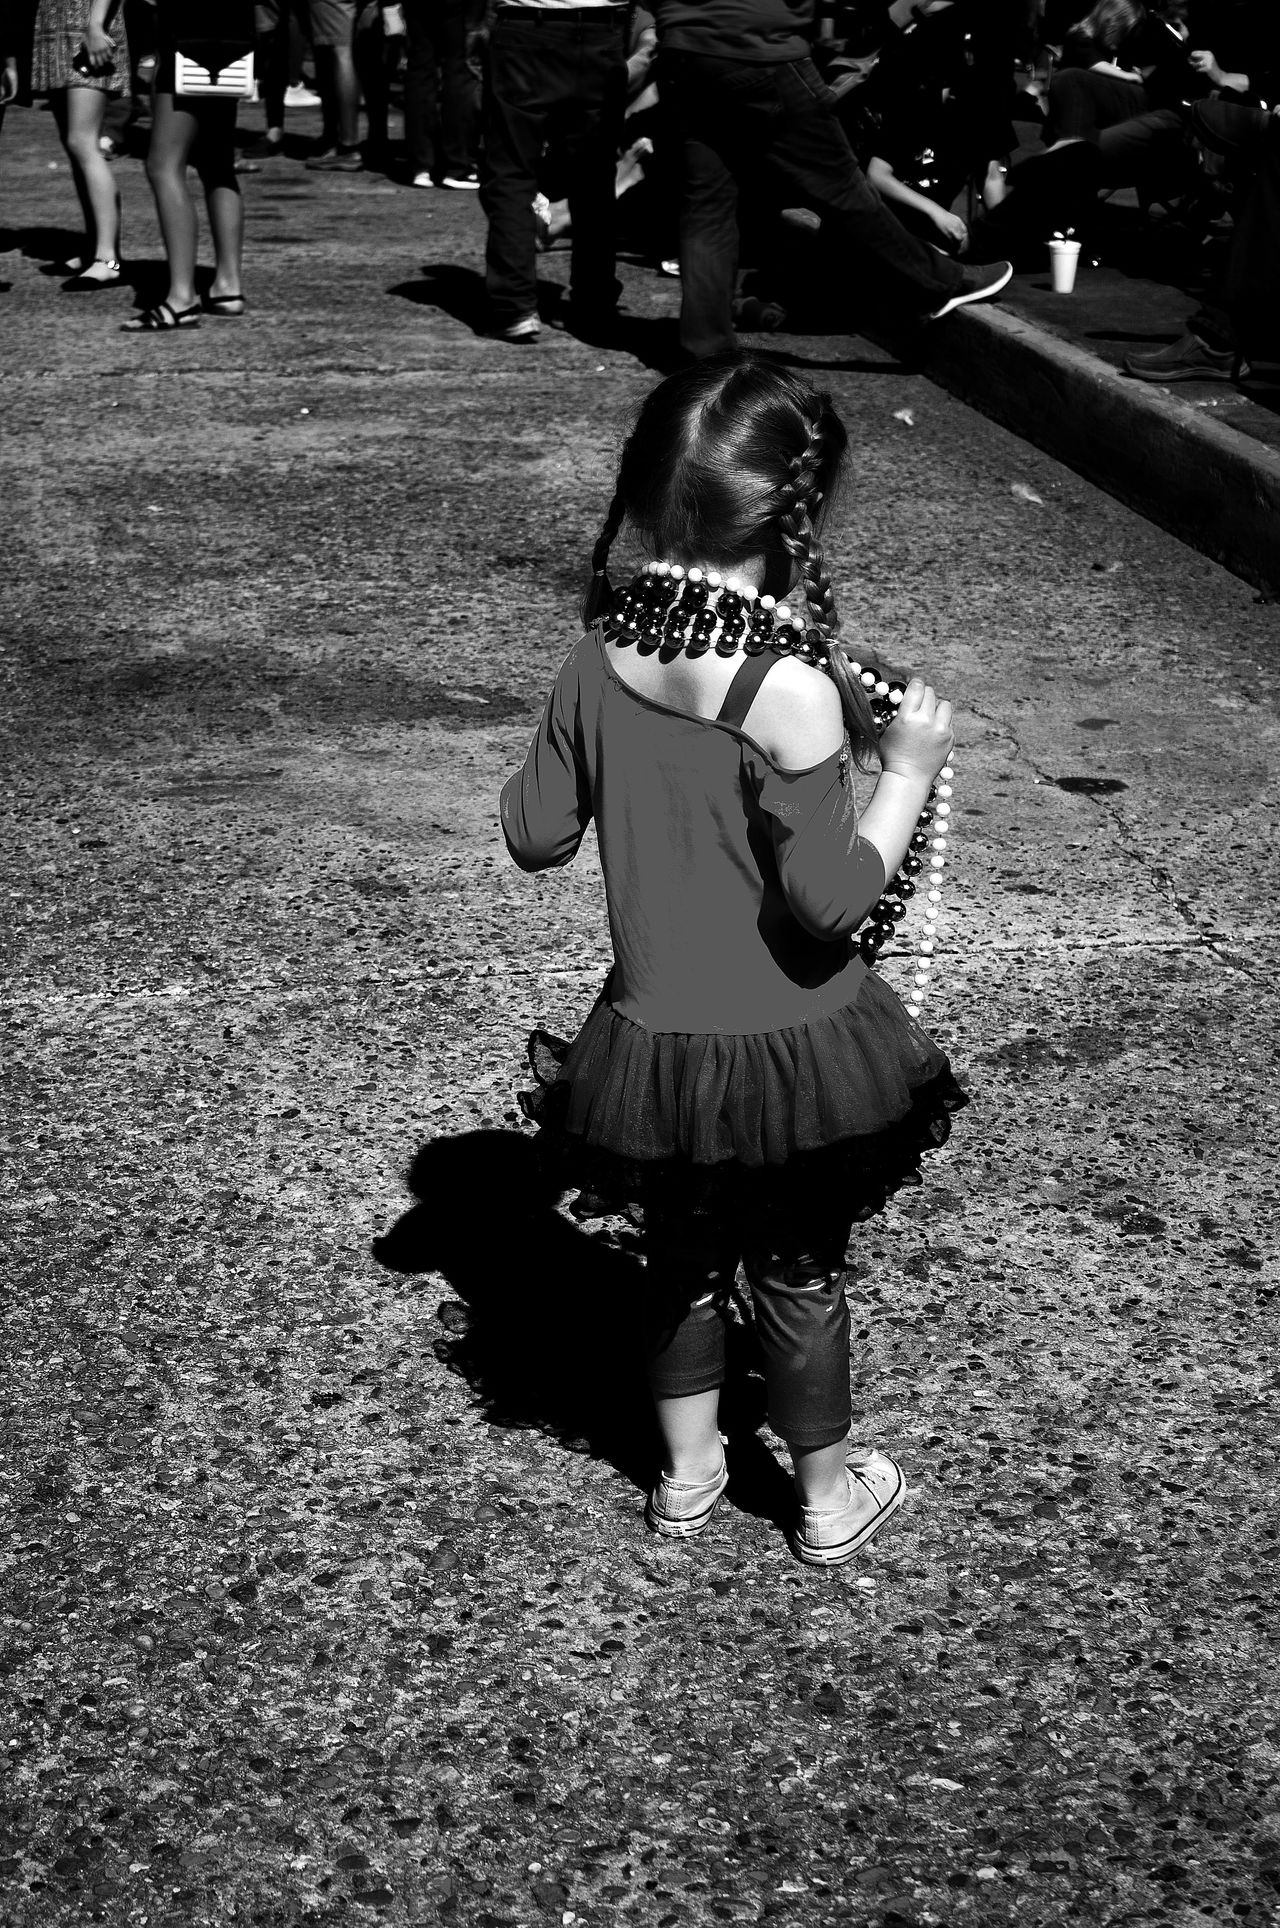 Black And White Photography Childhood Day Full Length Leisure Activity Lifestyles M Mardi Gras Mardi Gras Girl One Person Outdoors People Real People Rear View Traditional Clothing